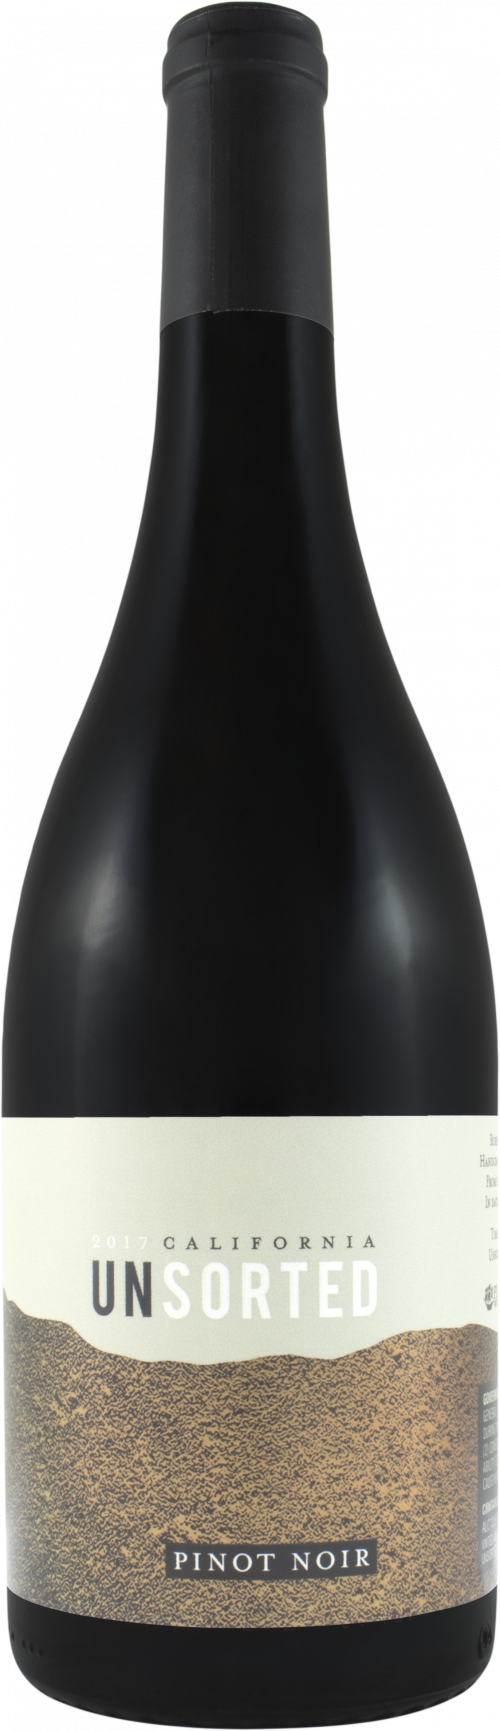 2018 Unsorted Pinot Noir 750ml